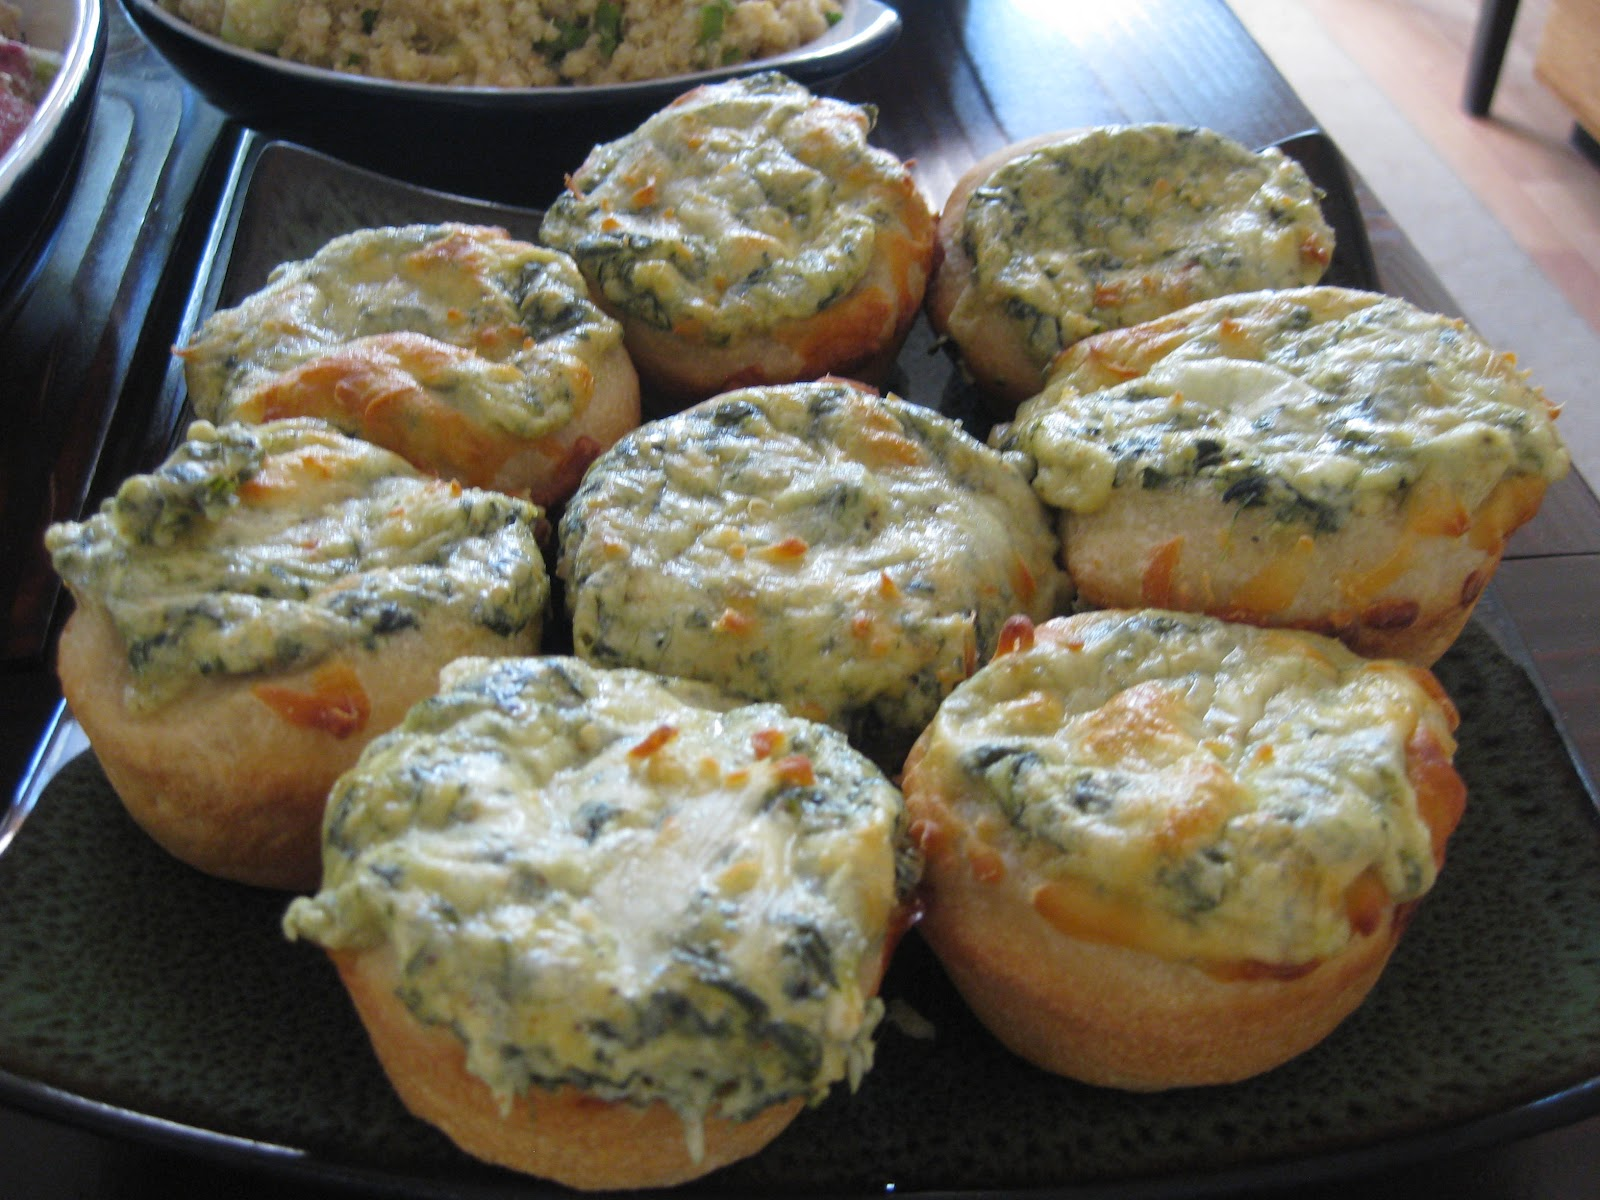 ice cream + french fries: Baked Spinach Dip Mini Bread Bowls